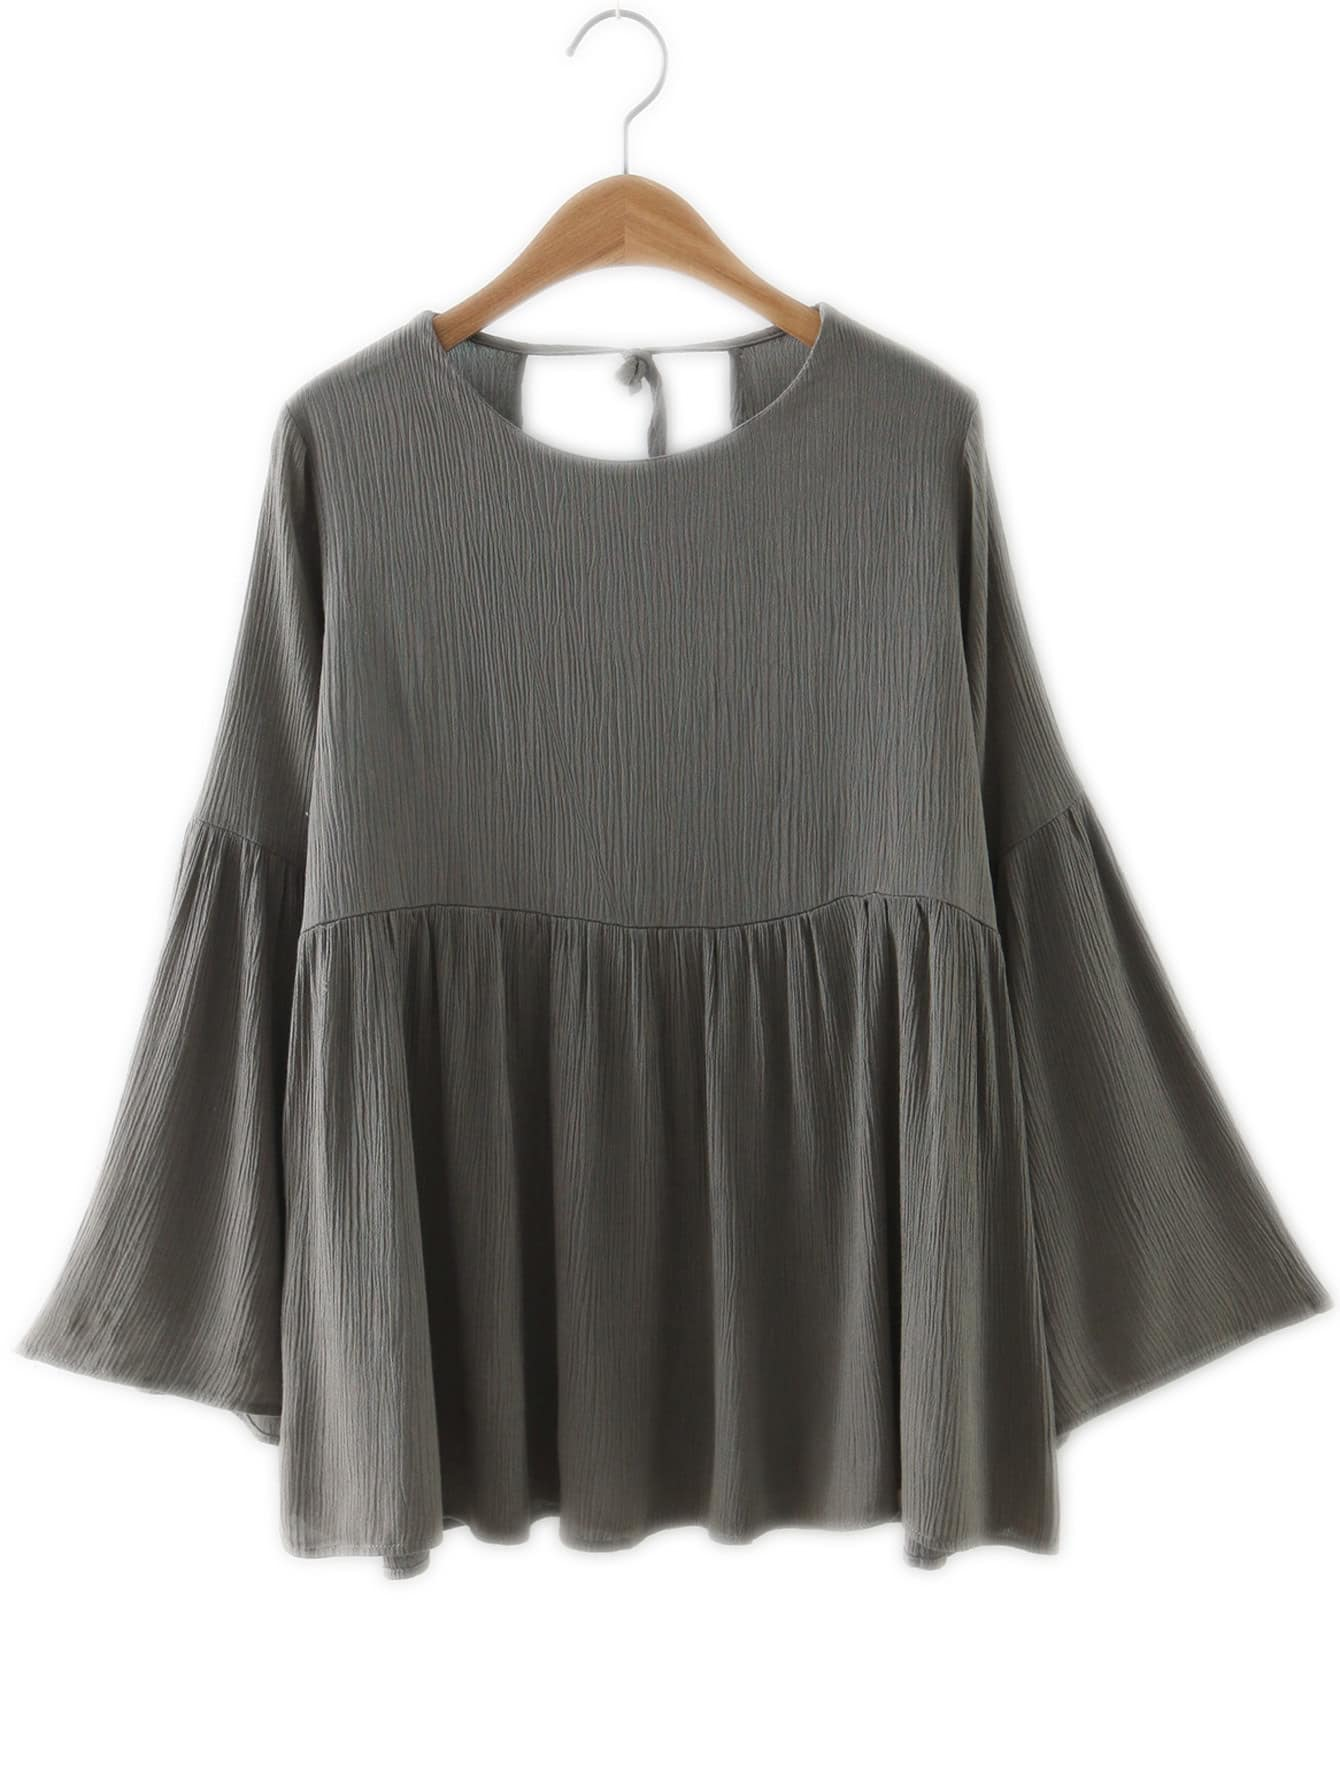 Khaki Bell Sleeve Knotted Loose Blouse